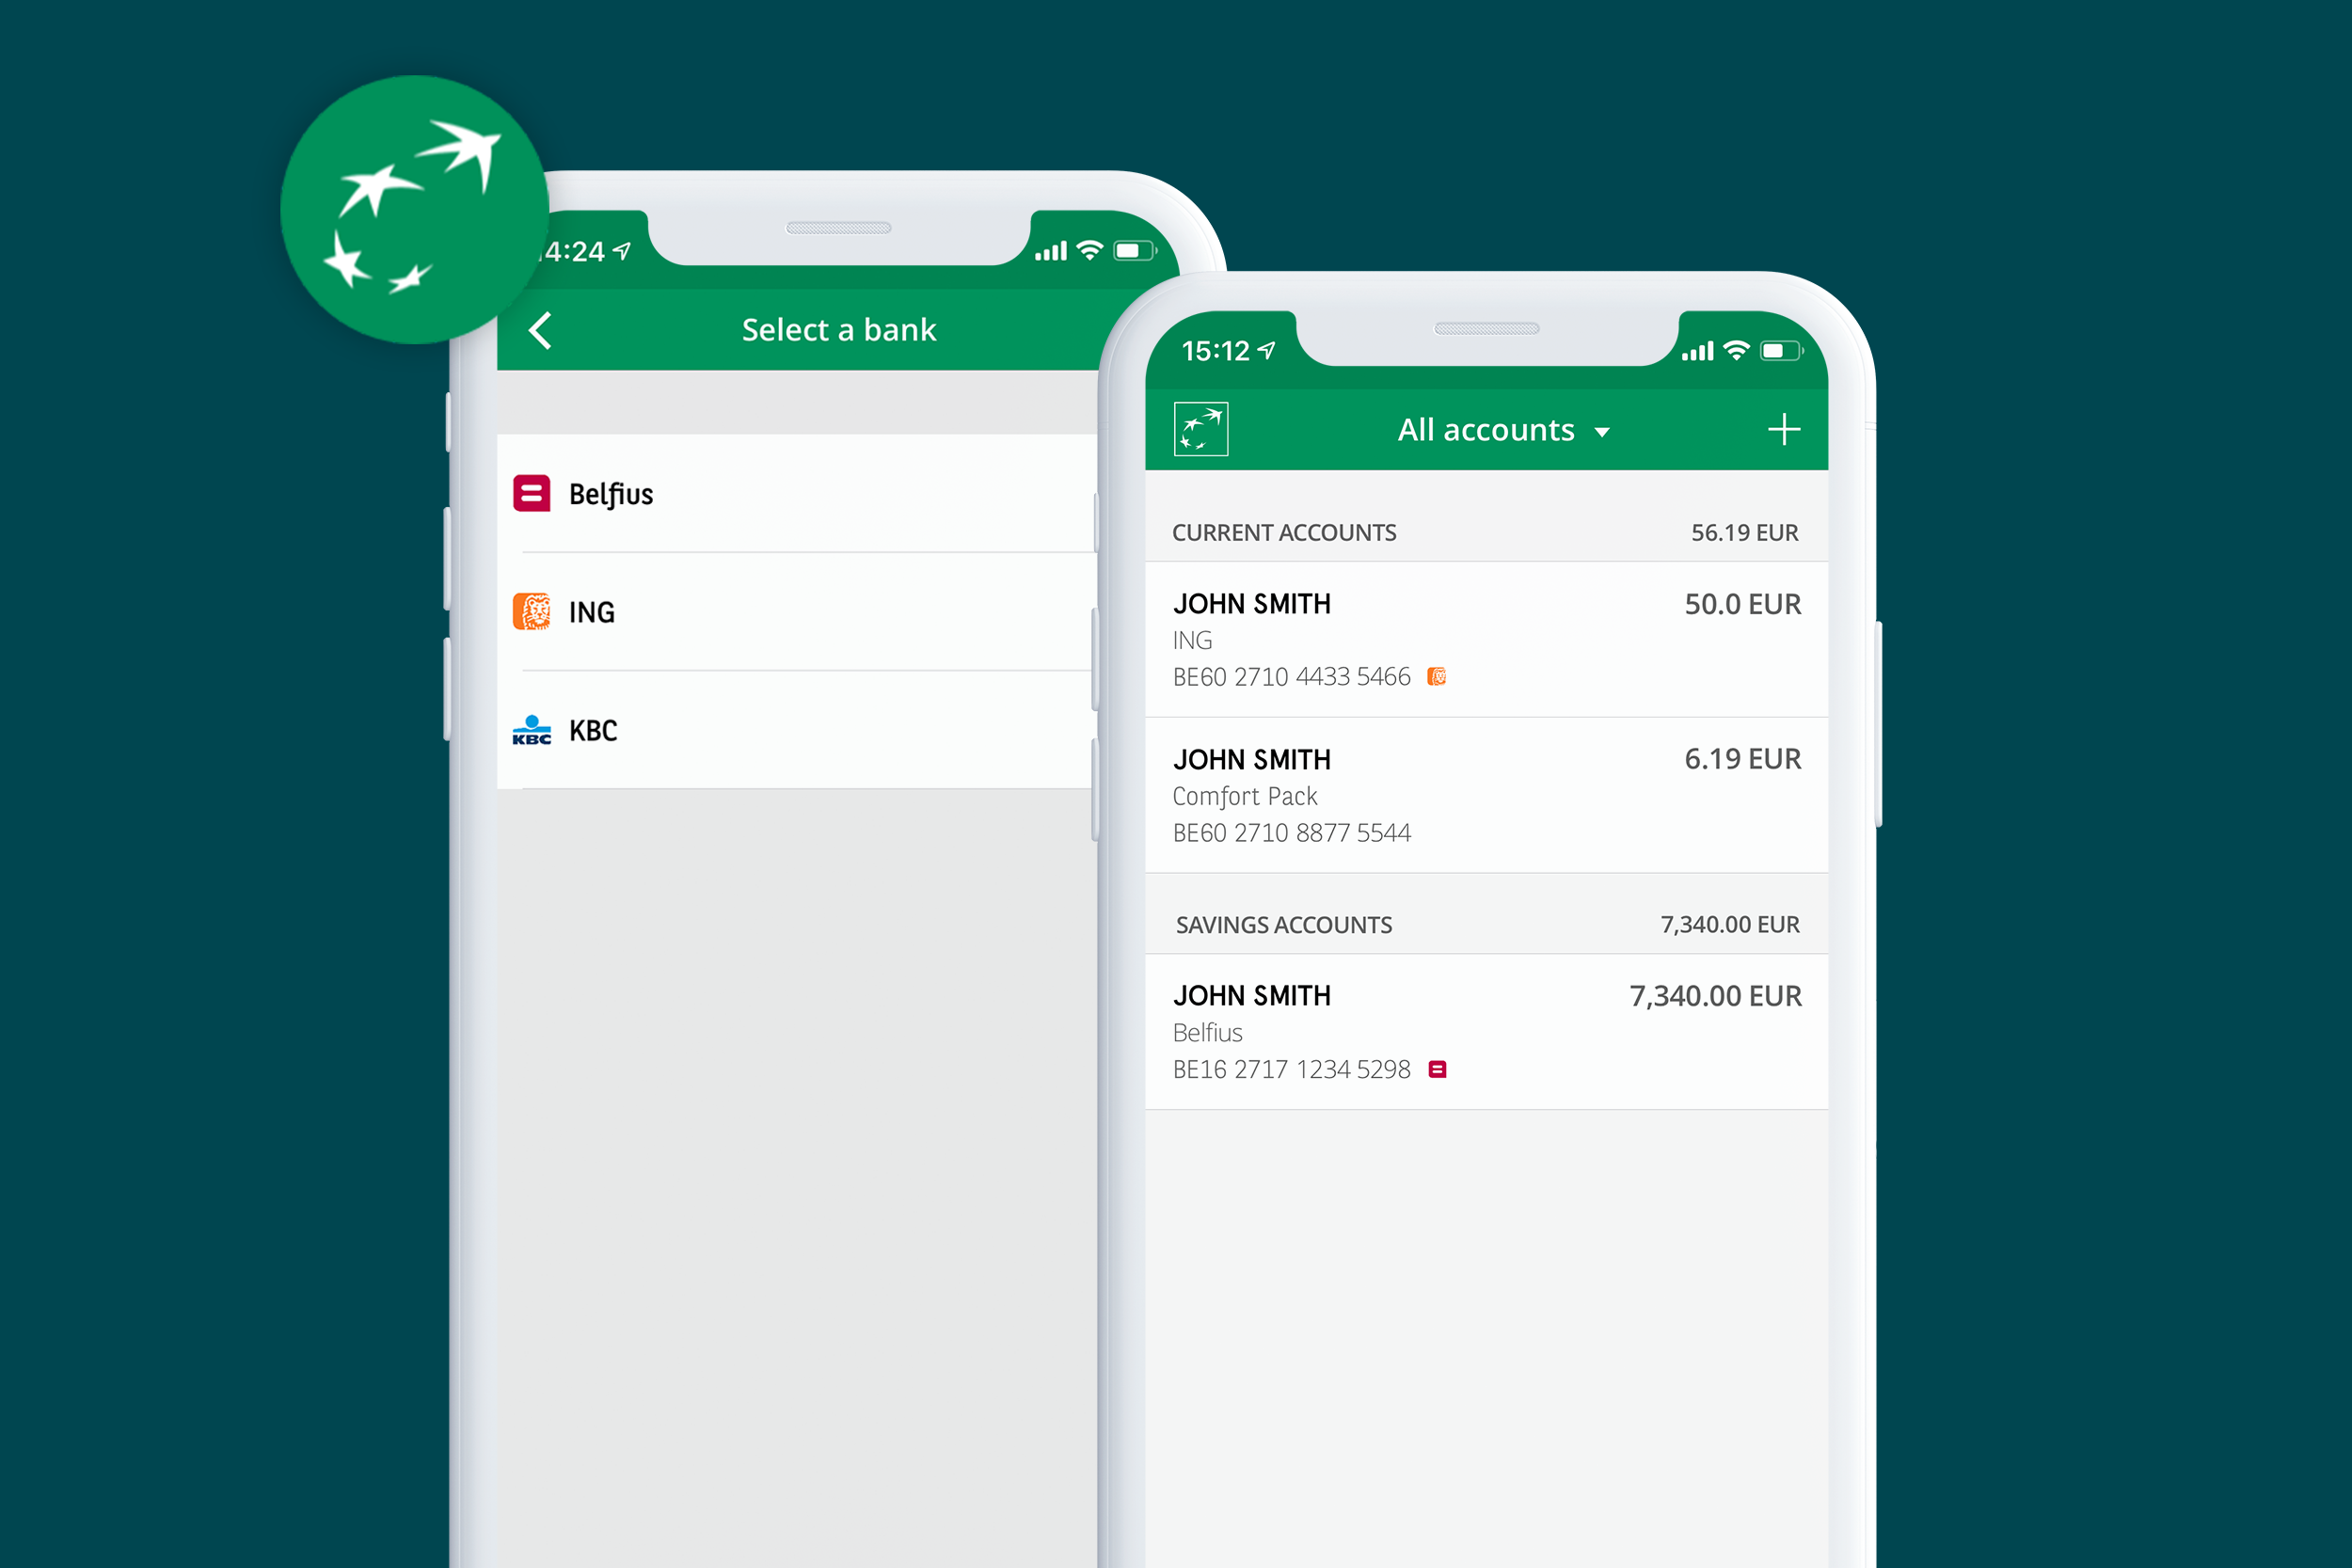 Users of the Easy Banking App can now view their accounts, balances and transactions in real-time.